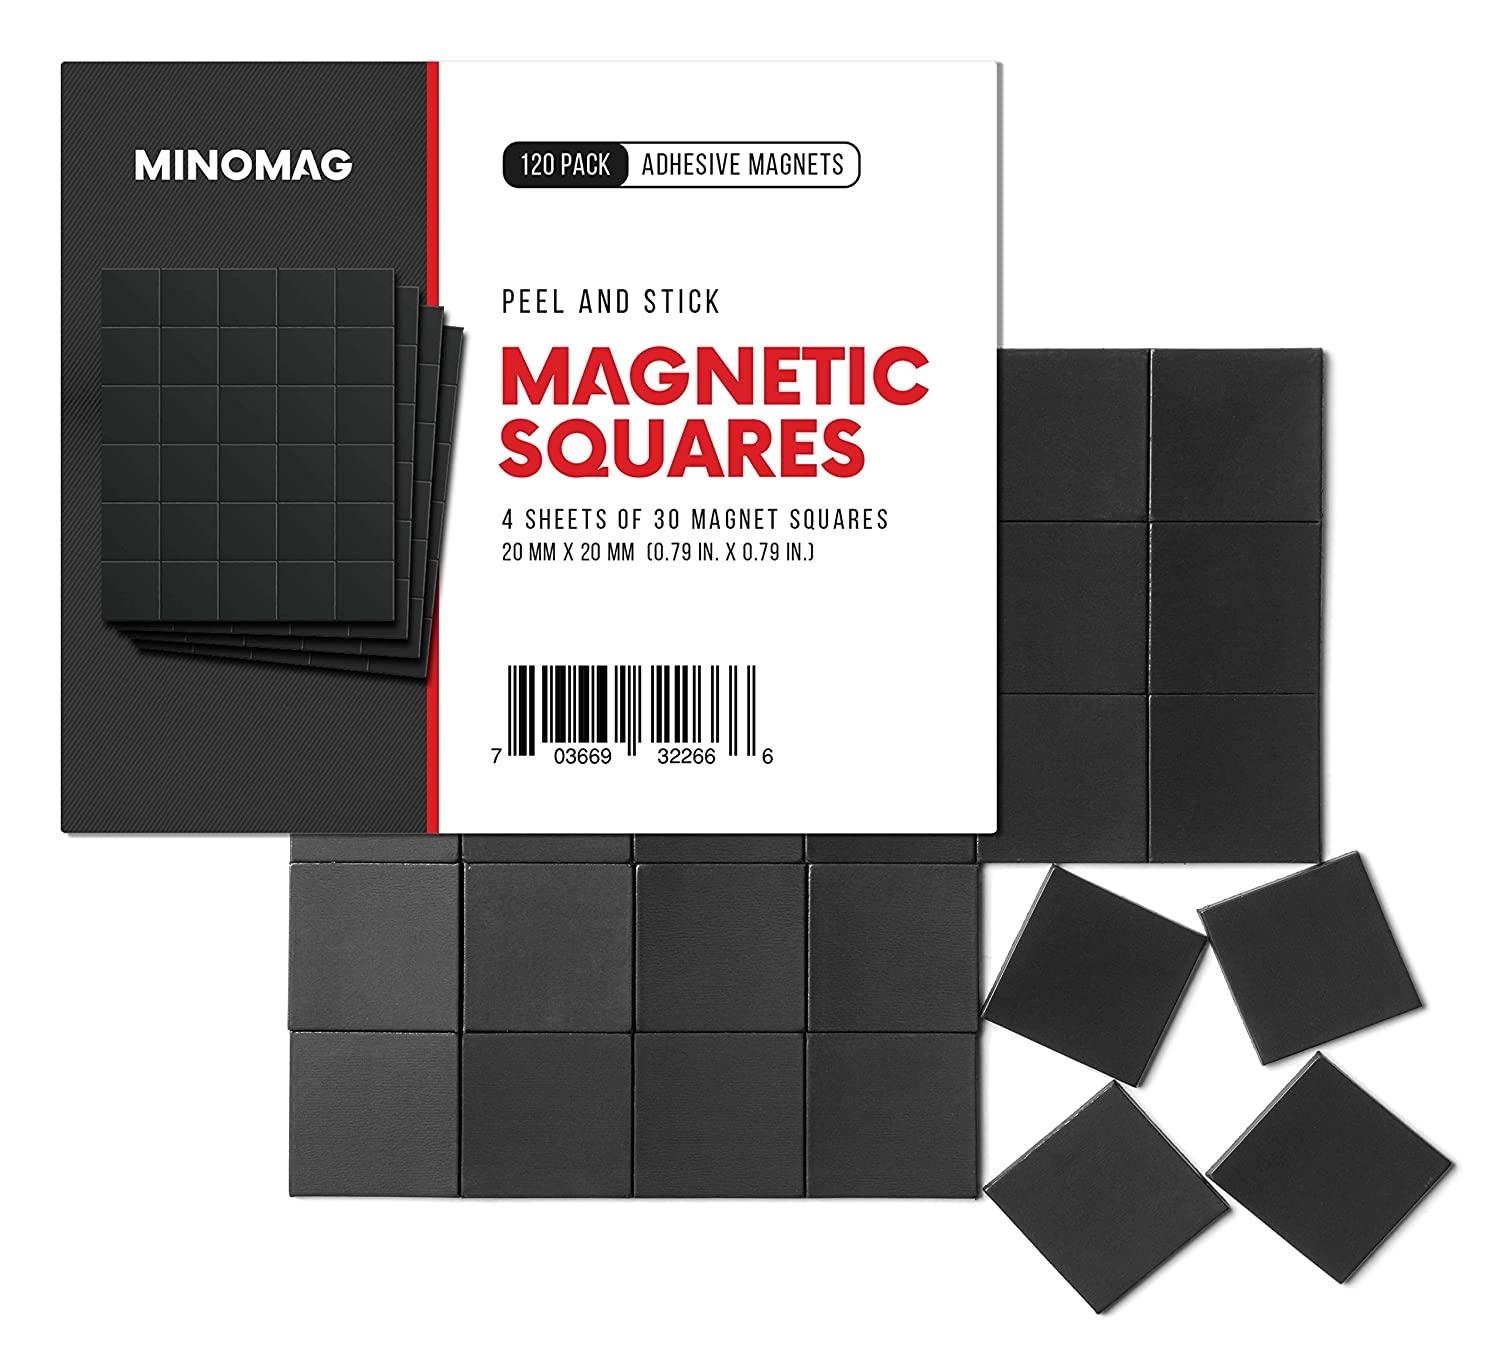 Minomag Peel and Stick Adhesive Magnetic Squares (120 Pack)   0.79 inch / 20mm Wide Small Square Multi-Use Magnet